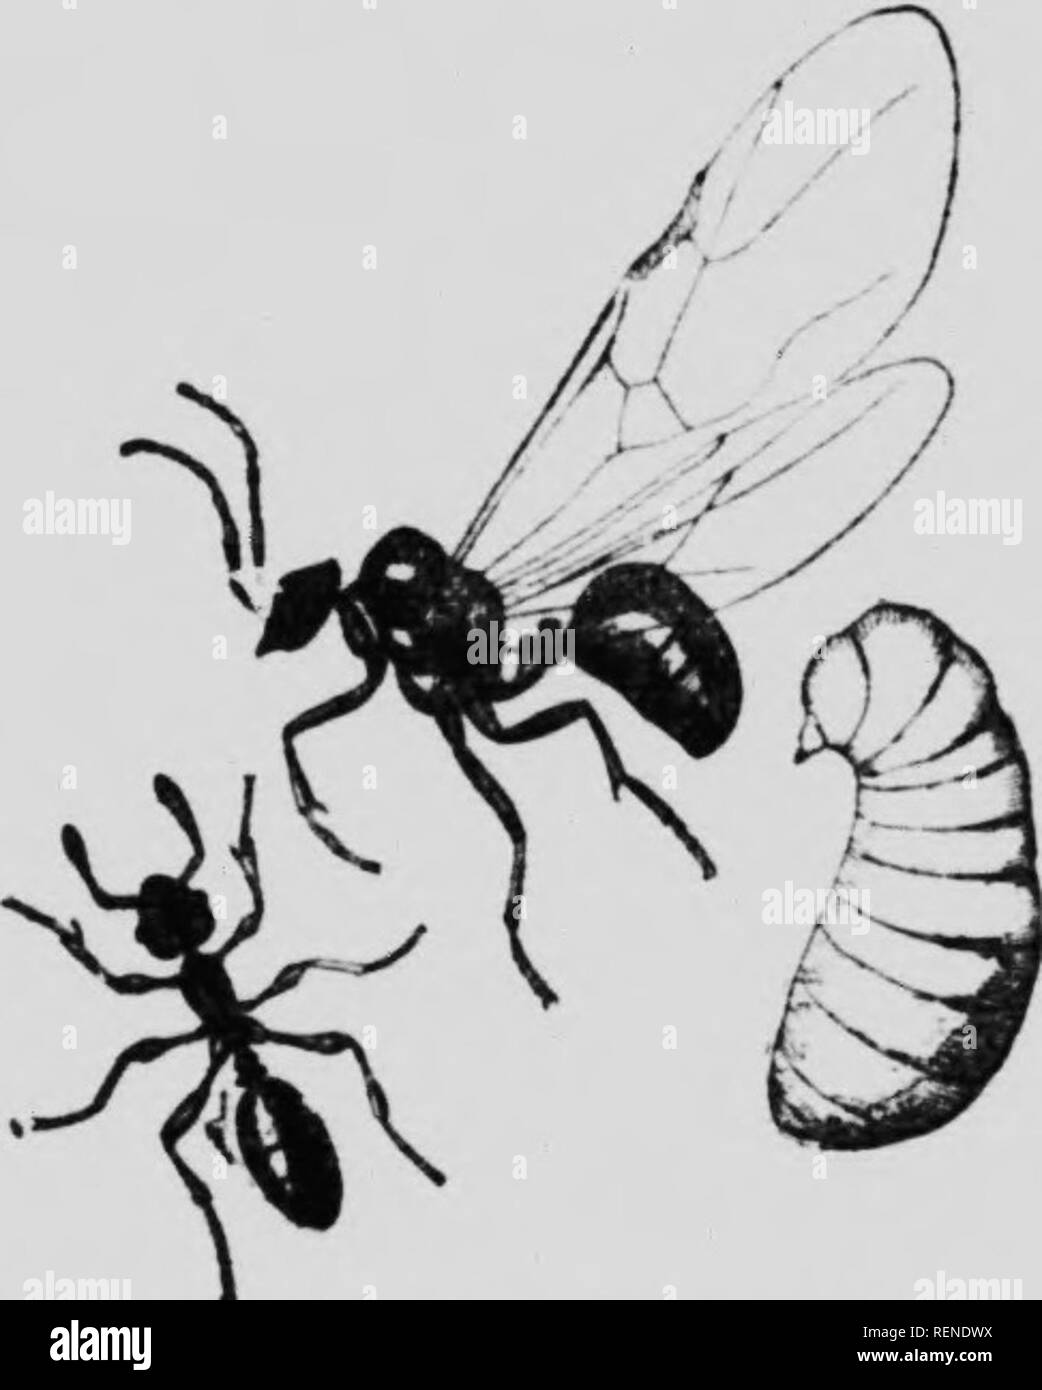 . The insect book [microform] : a popular account of the bees, wasps, ants, grasshoppers, flies and other North American insects exclusive of the butterflies, moths and beetles, with full life histories, tables and bibliographies. Insectes; Insects. i' - â (i i: ,1! The Ants insects. A number of ye:irs iifto some l.iherian coffee-trees were started in the greenhouse. On the under s^de of the leaves of these cofTee-trees, there exist at the bases of certain of the leaf ribs some very minute, nectar-secreting glands. The ants soon found this out and sipprd the nectar. Then the idea occurred to  - Stock Image